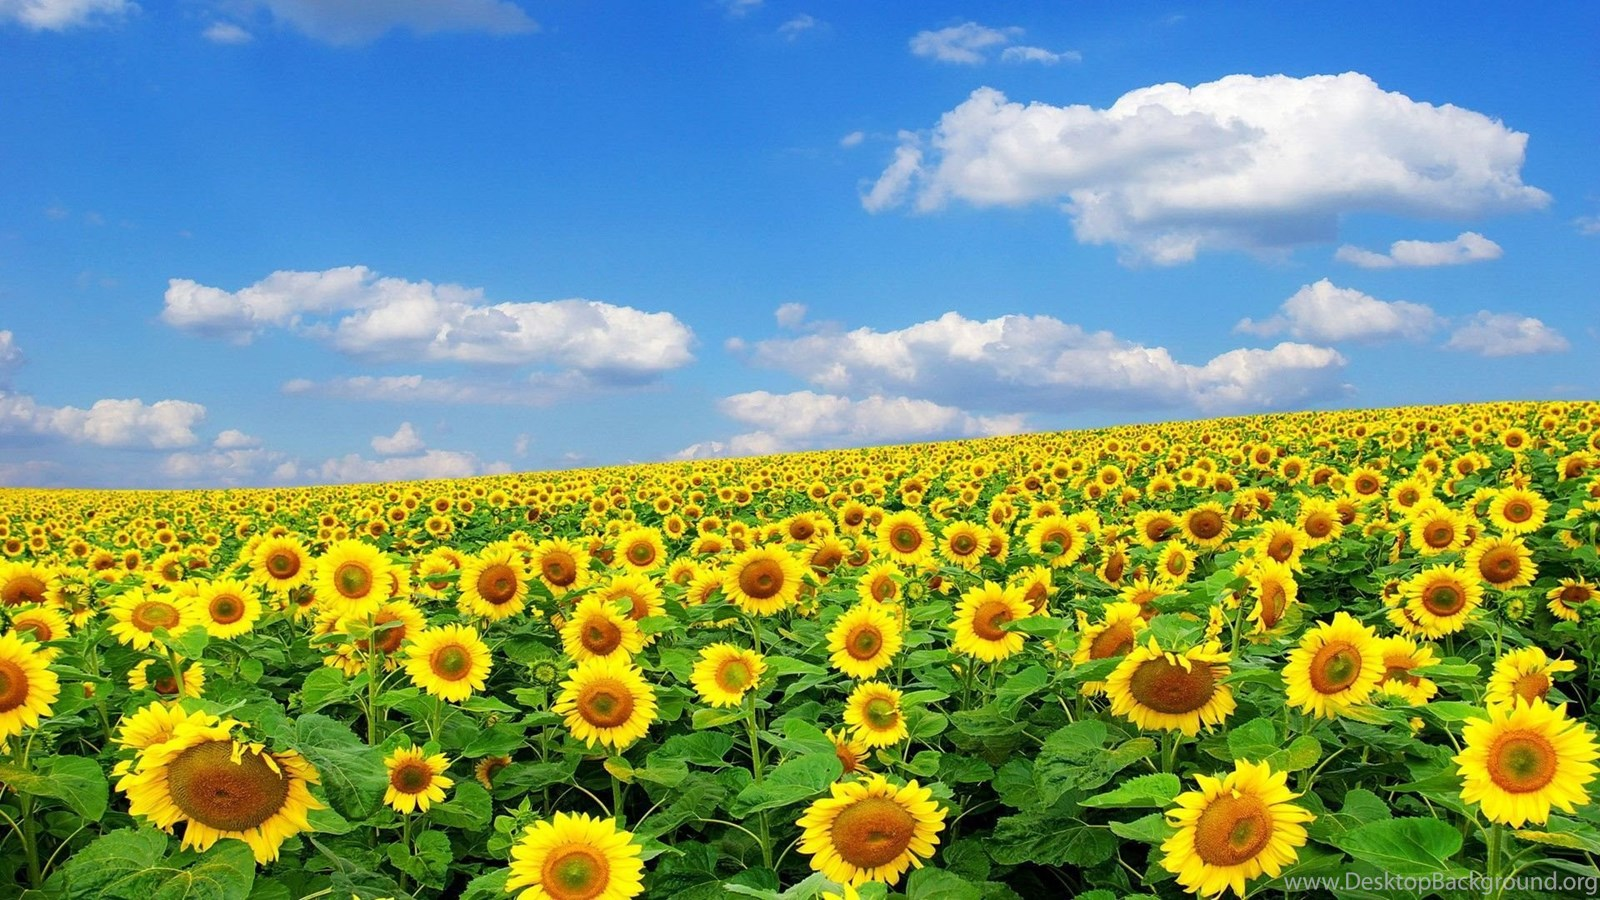 Get Fall Sunflower Desktop Background JPG